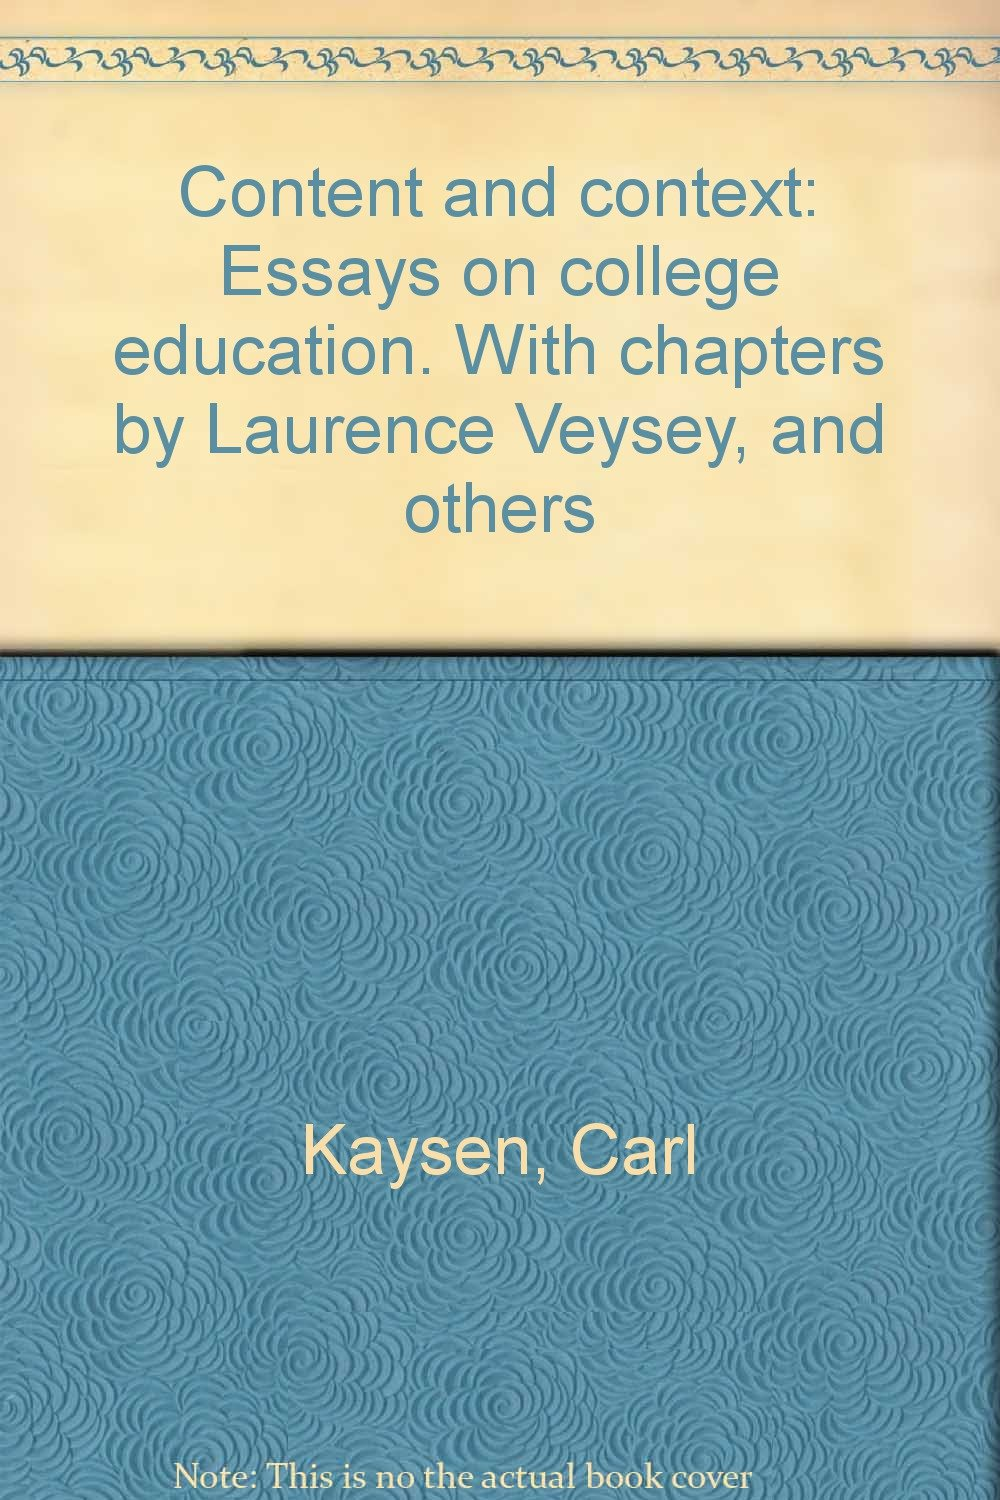 Content And Context Essays On College Education With Chapters By  Content And Context Essays On College Education With Chapters By Laurence  Veysey And Others Carl Kaysen Amazoncom Books Help Me Writing My Assignment also Pricing Your Writing Services  High School Entrance Essay Samples